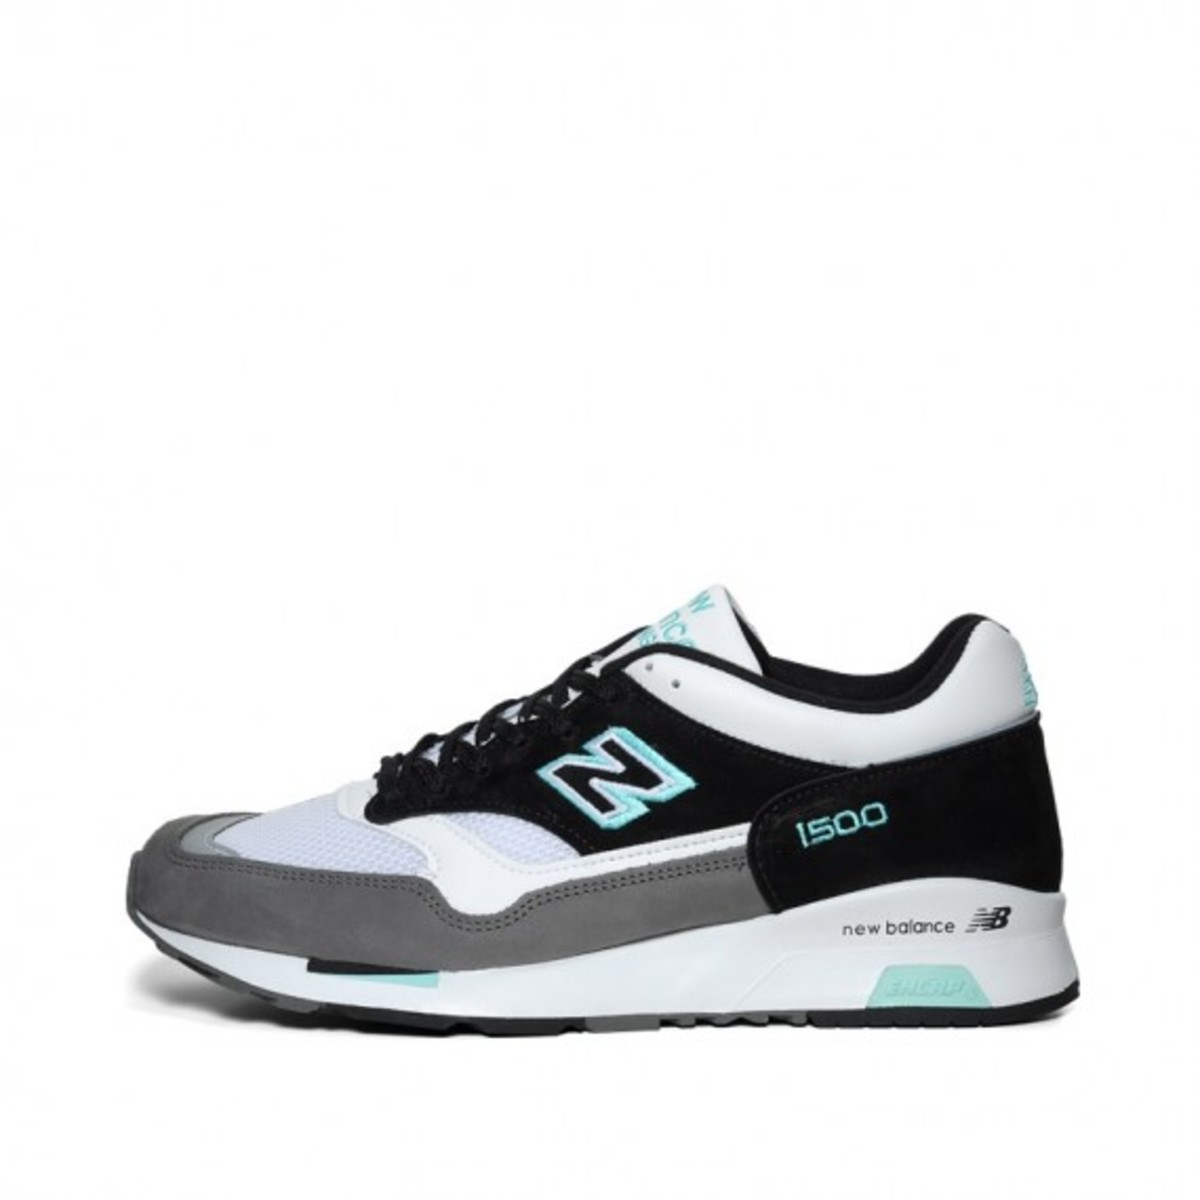 new-balance-m1500-grey-mint-02